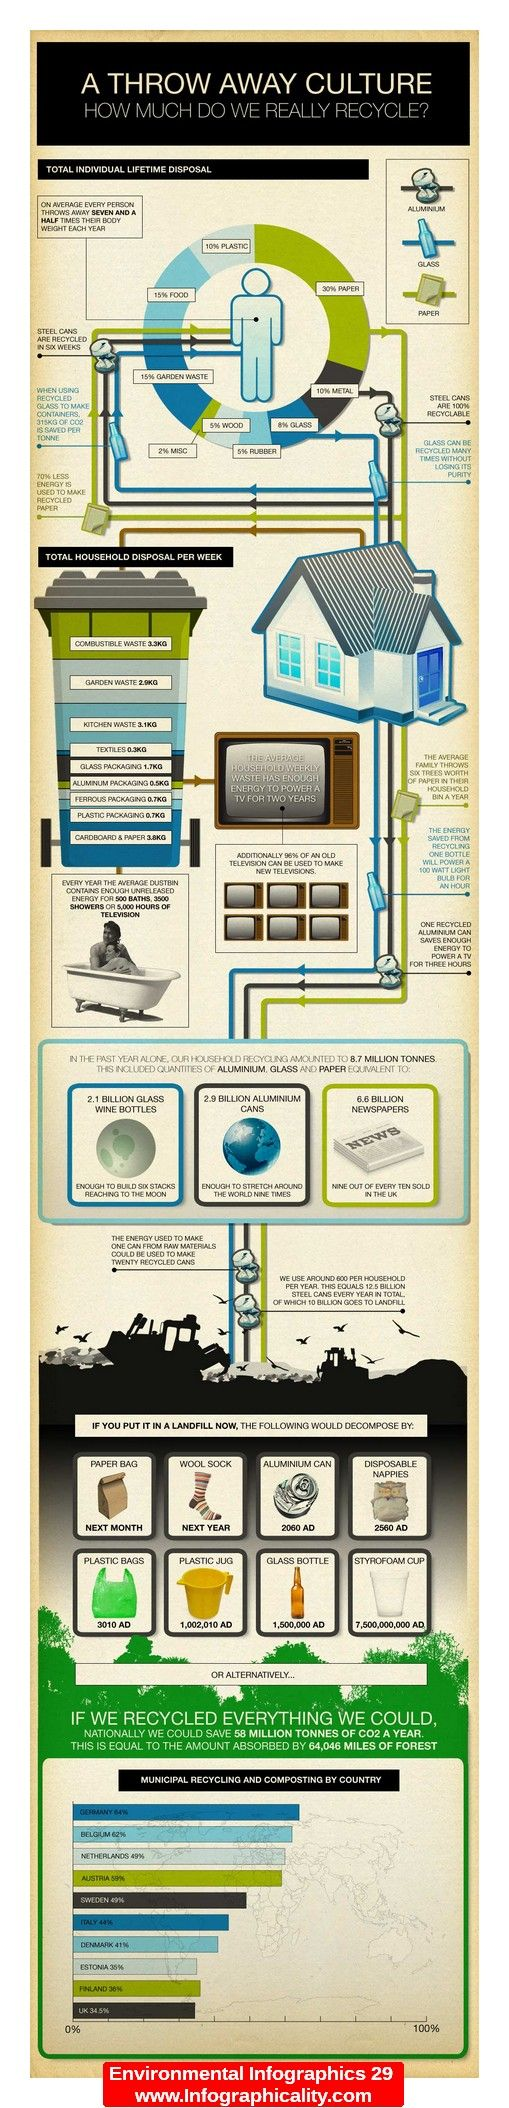 Environmental Infographics 29 - http://infographicality.com/environmental-infographics-29/